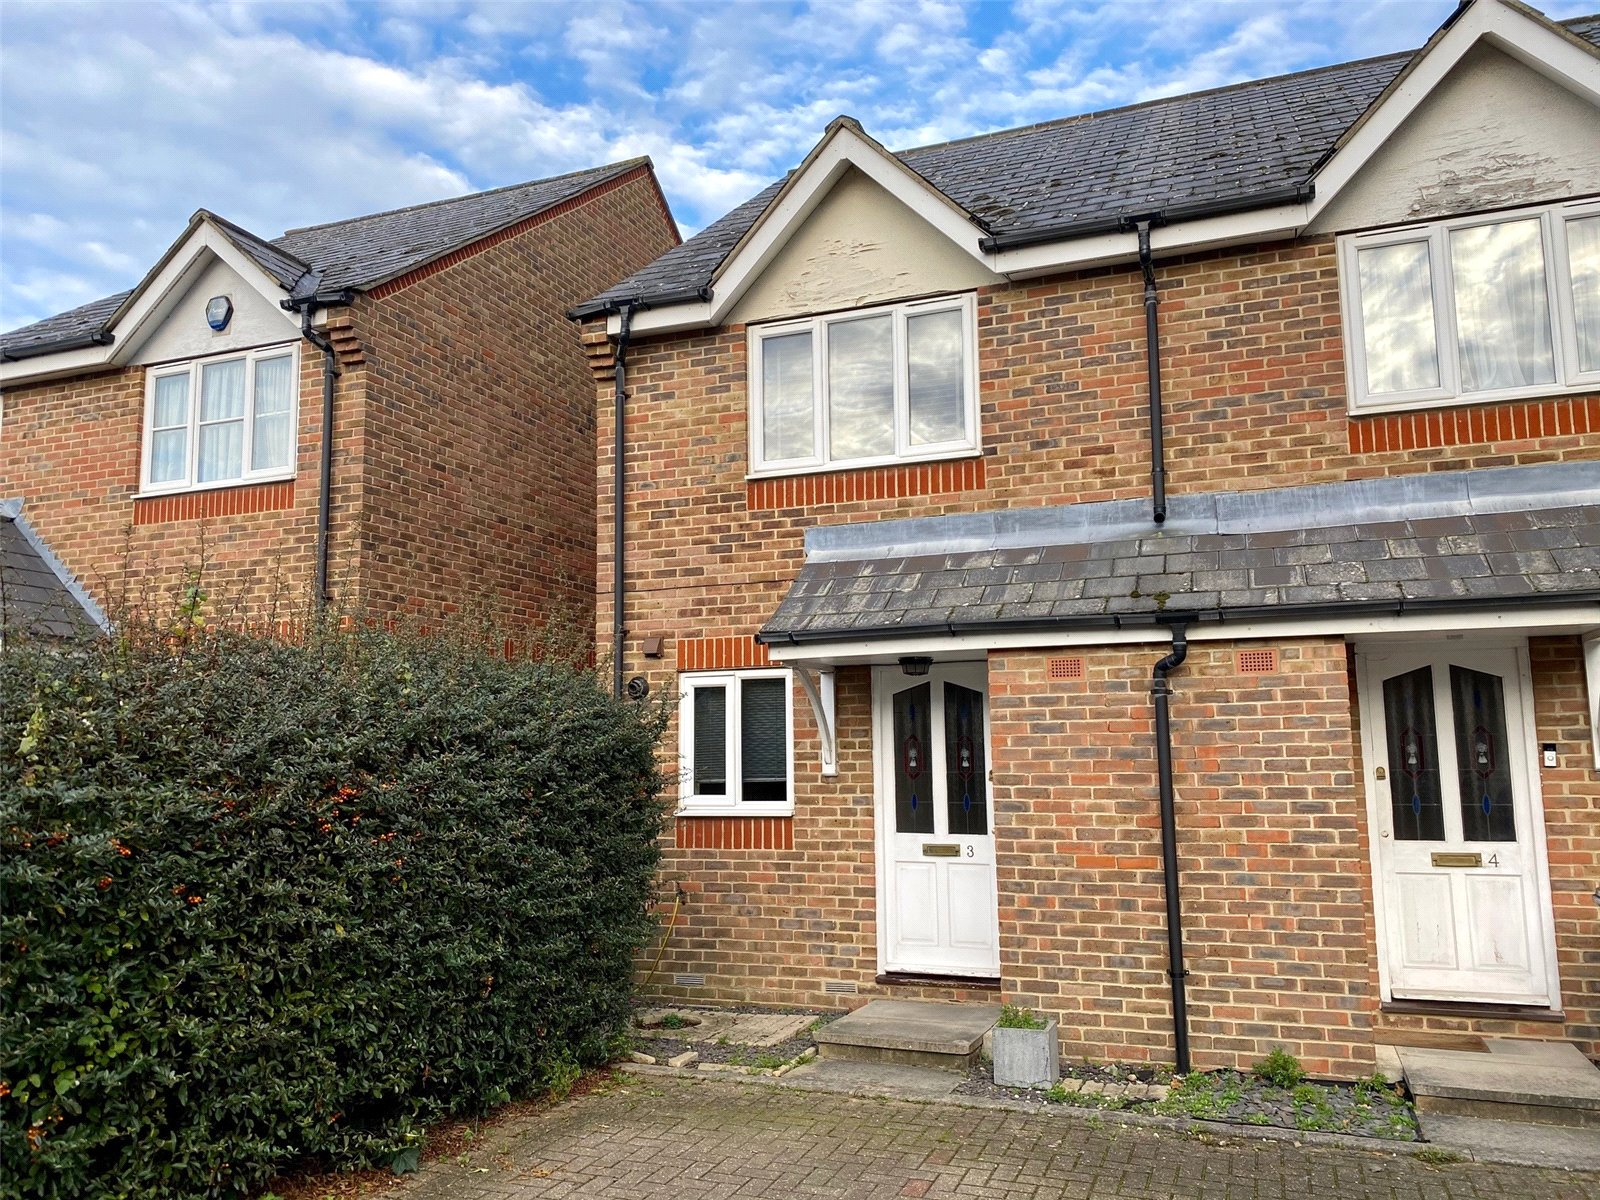 2 bed house to rent in New Southgate, N11 3PY 0